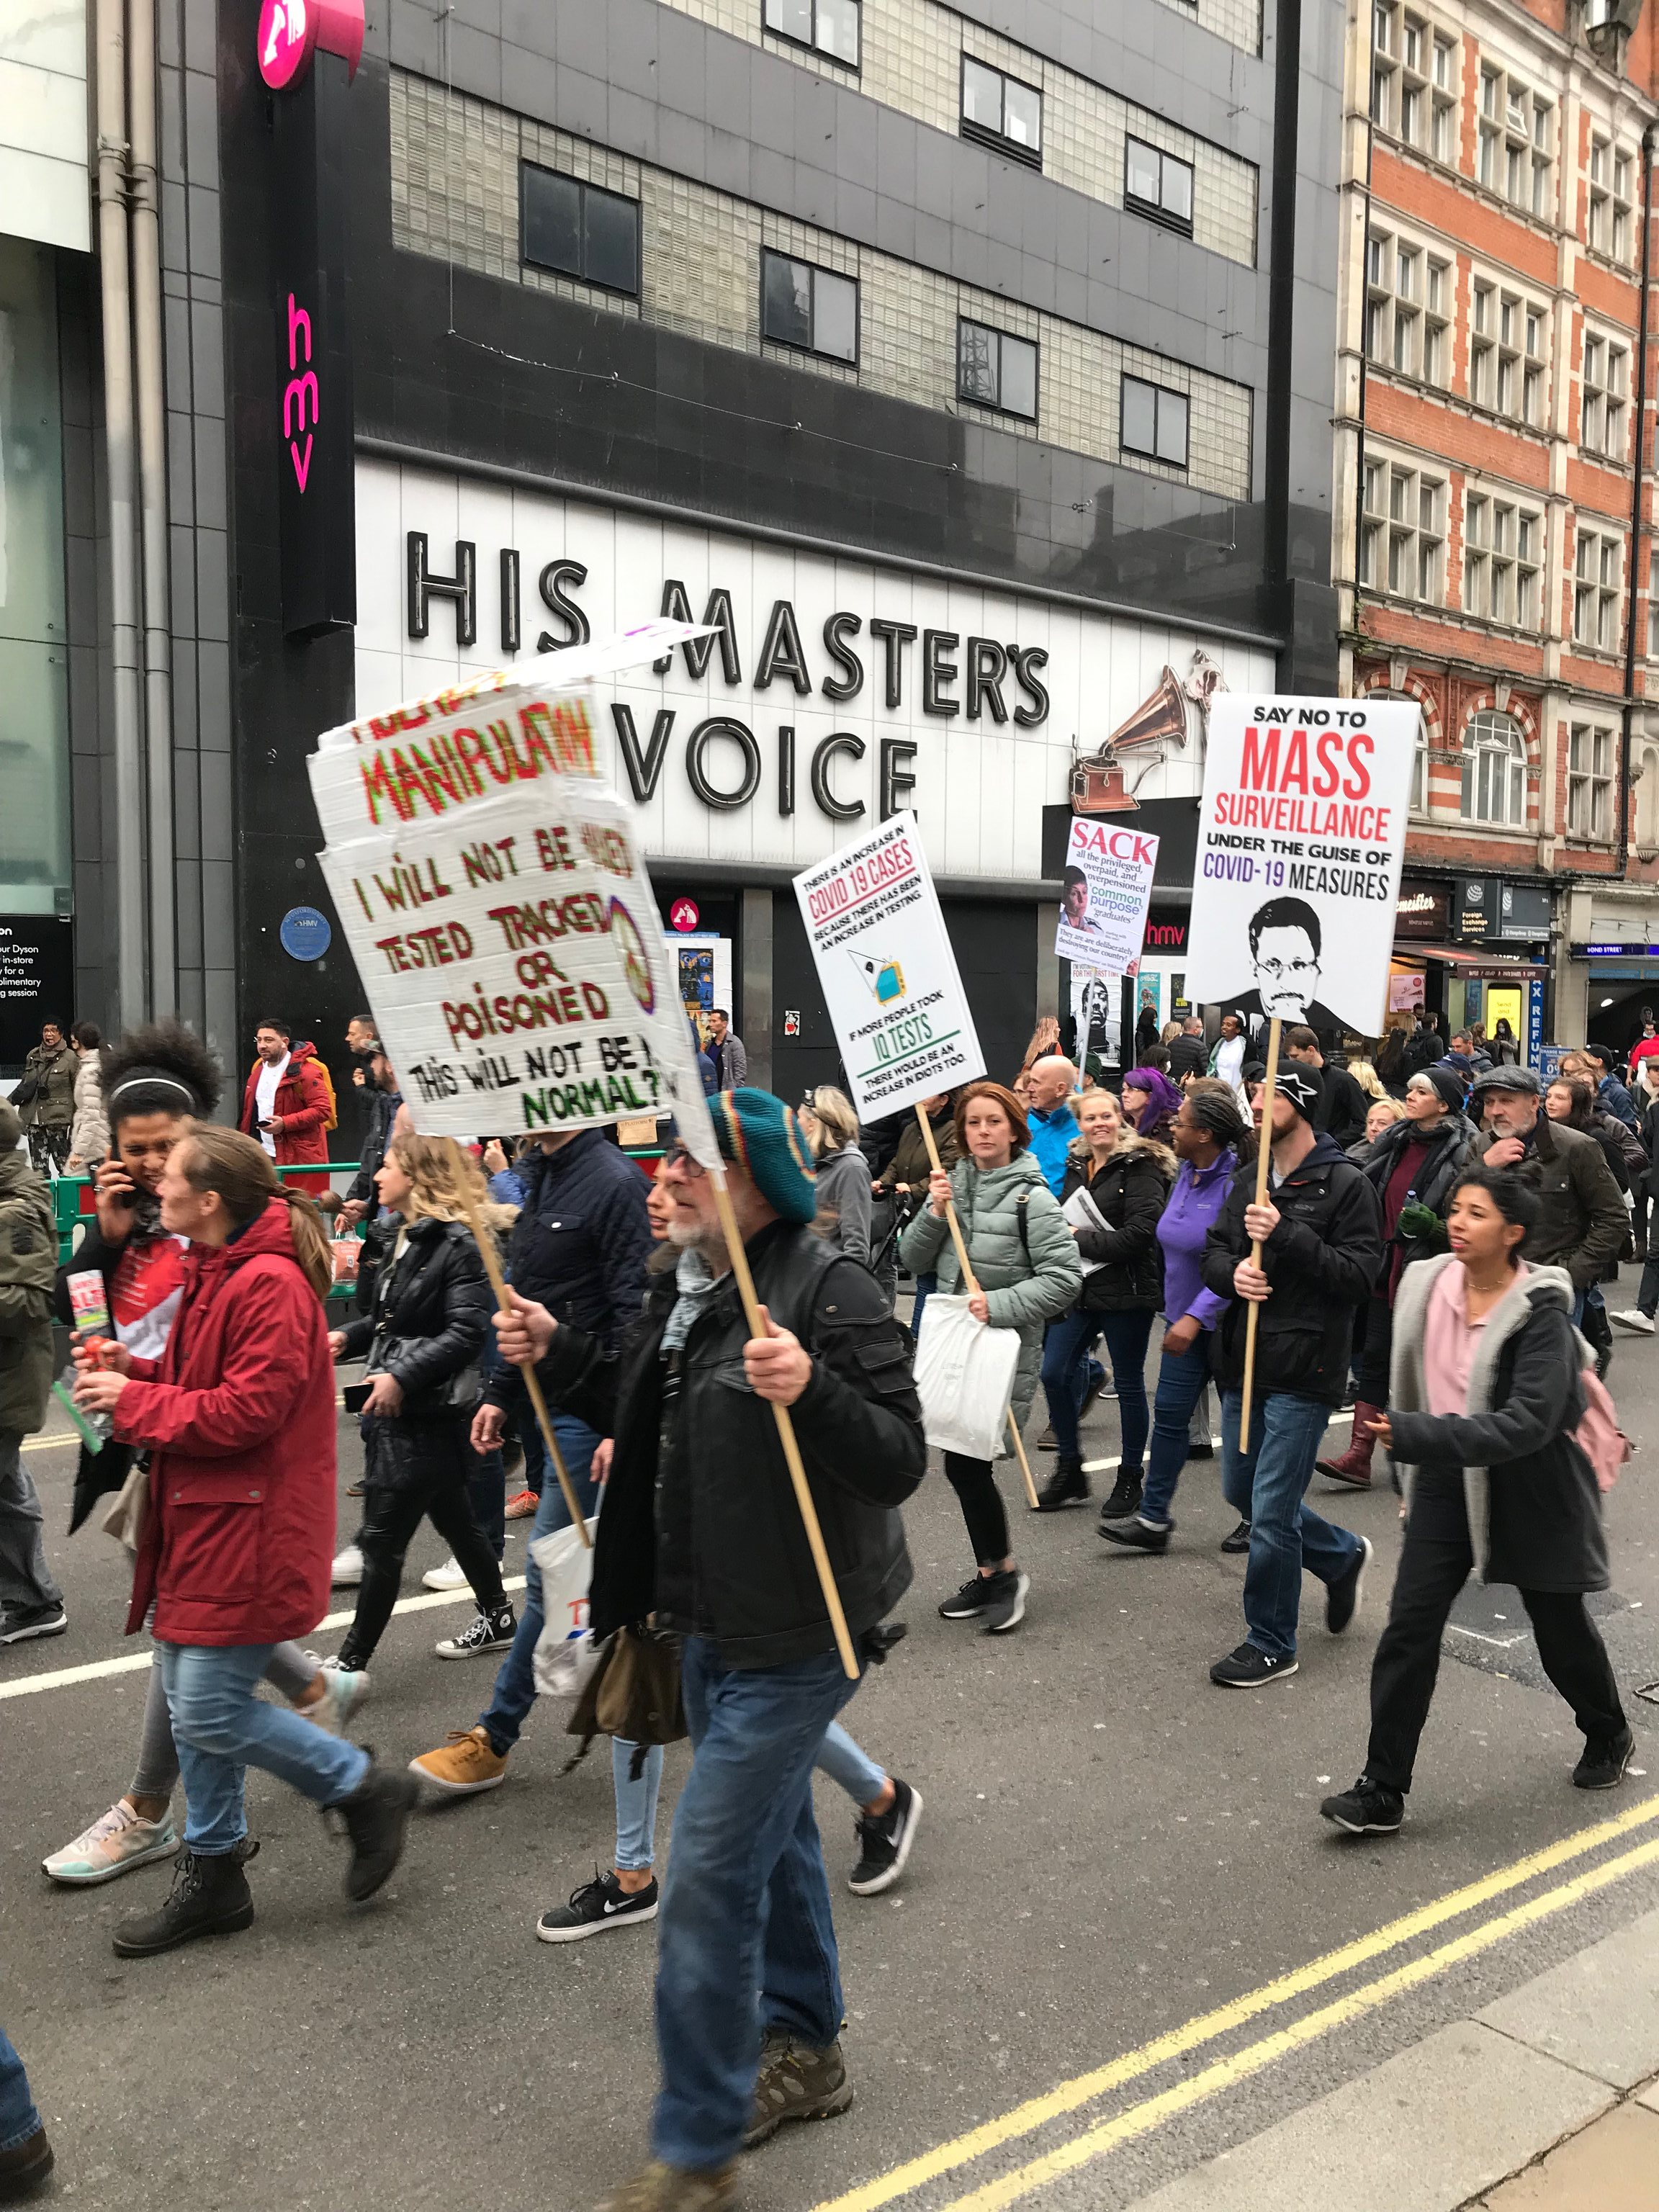 London Protest